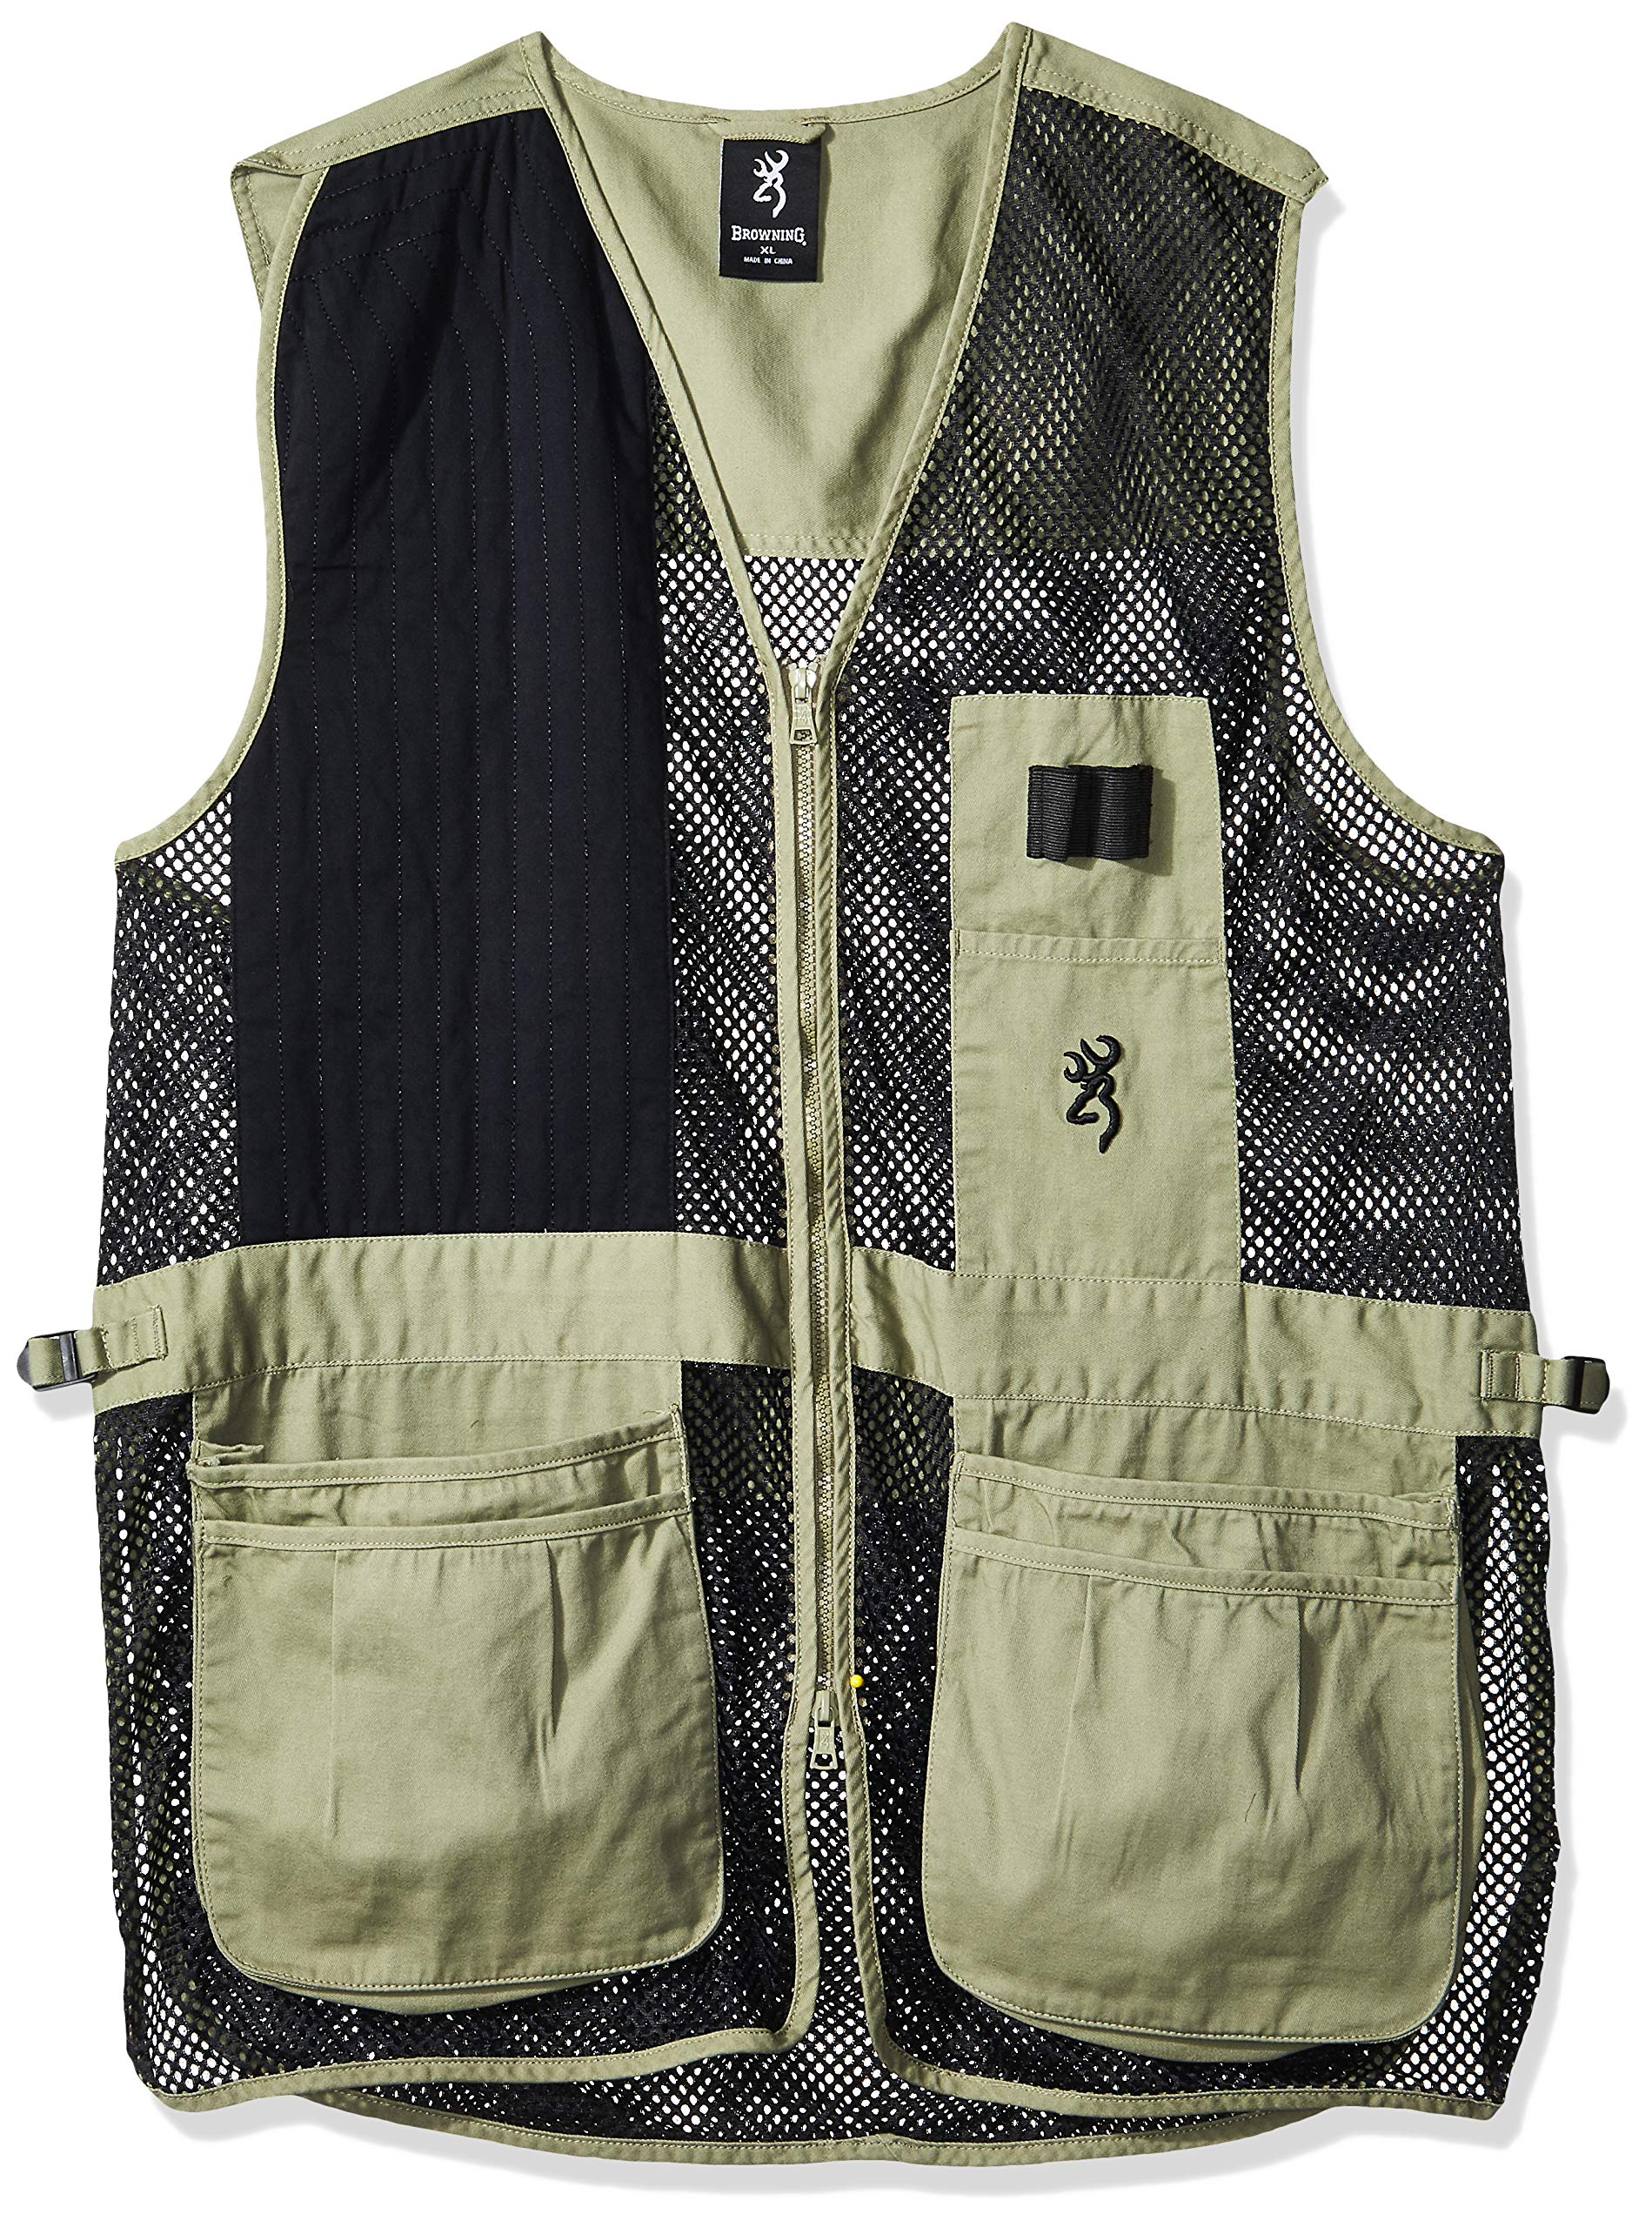 Browning, Trapper Creek Vest, Medium, Sage/Black by Browning